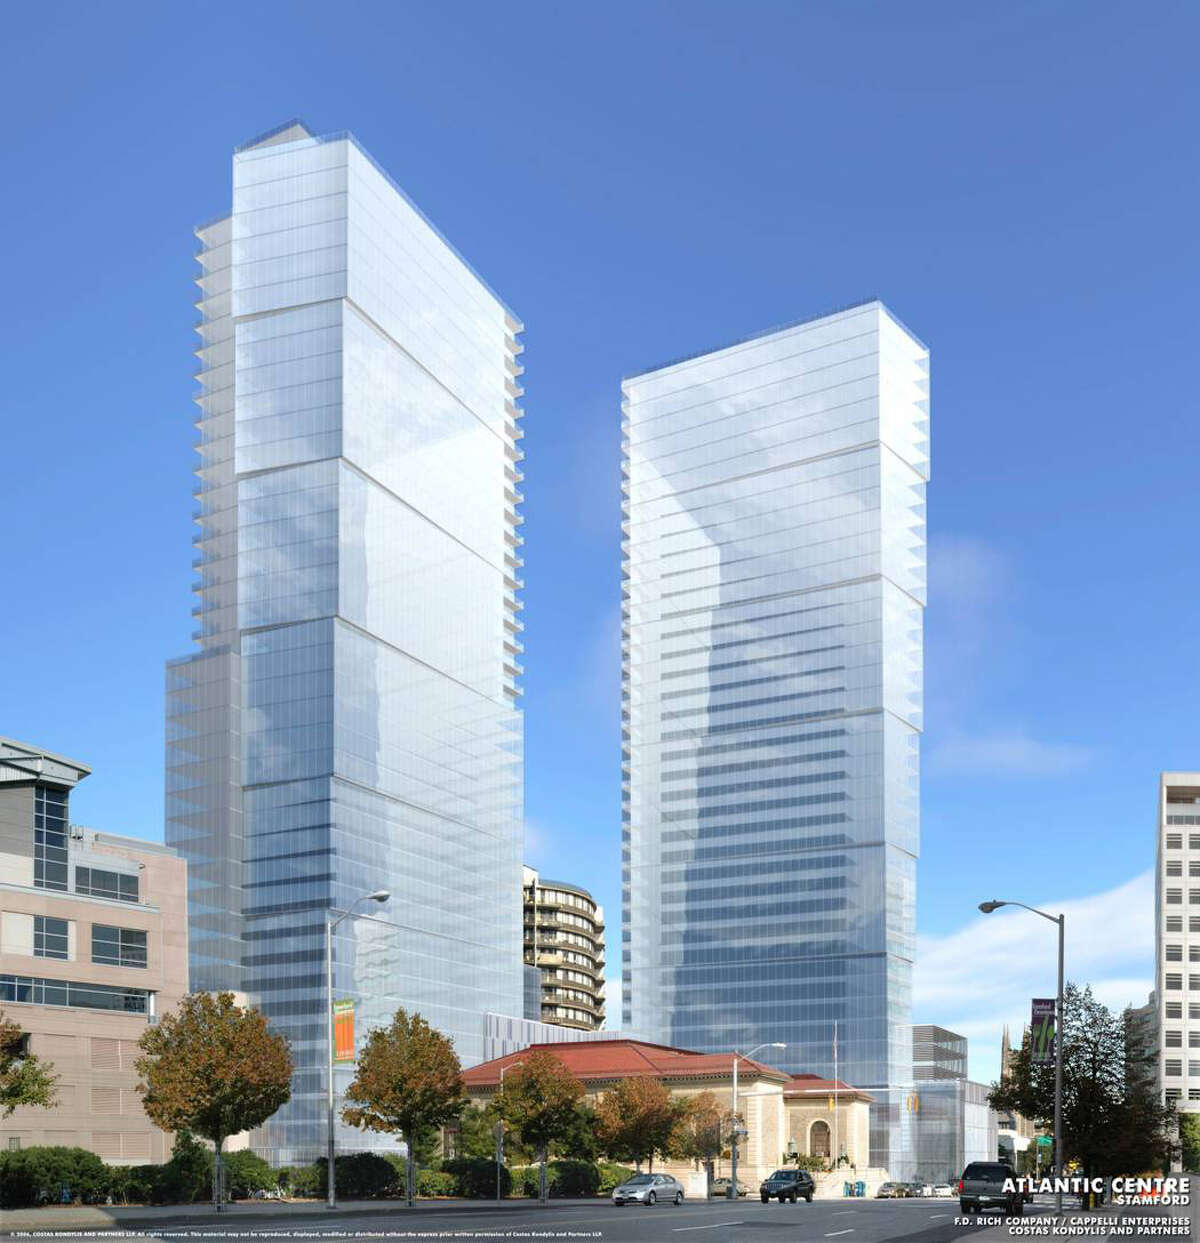 An artist rendering of one of the proposed Atlantic Centre development possibilities. at the intersection of Atlantic Street and Tresser Boulevard. Developers Thomast Rich and Louis Cappelli planned on building a Ritz-Carlton with 289 condominiums, 198 hotel rooms, and 68,000 square feet of retail space, but city zoning officials denied their application to extend the permit for the project. Contributed art